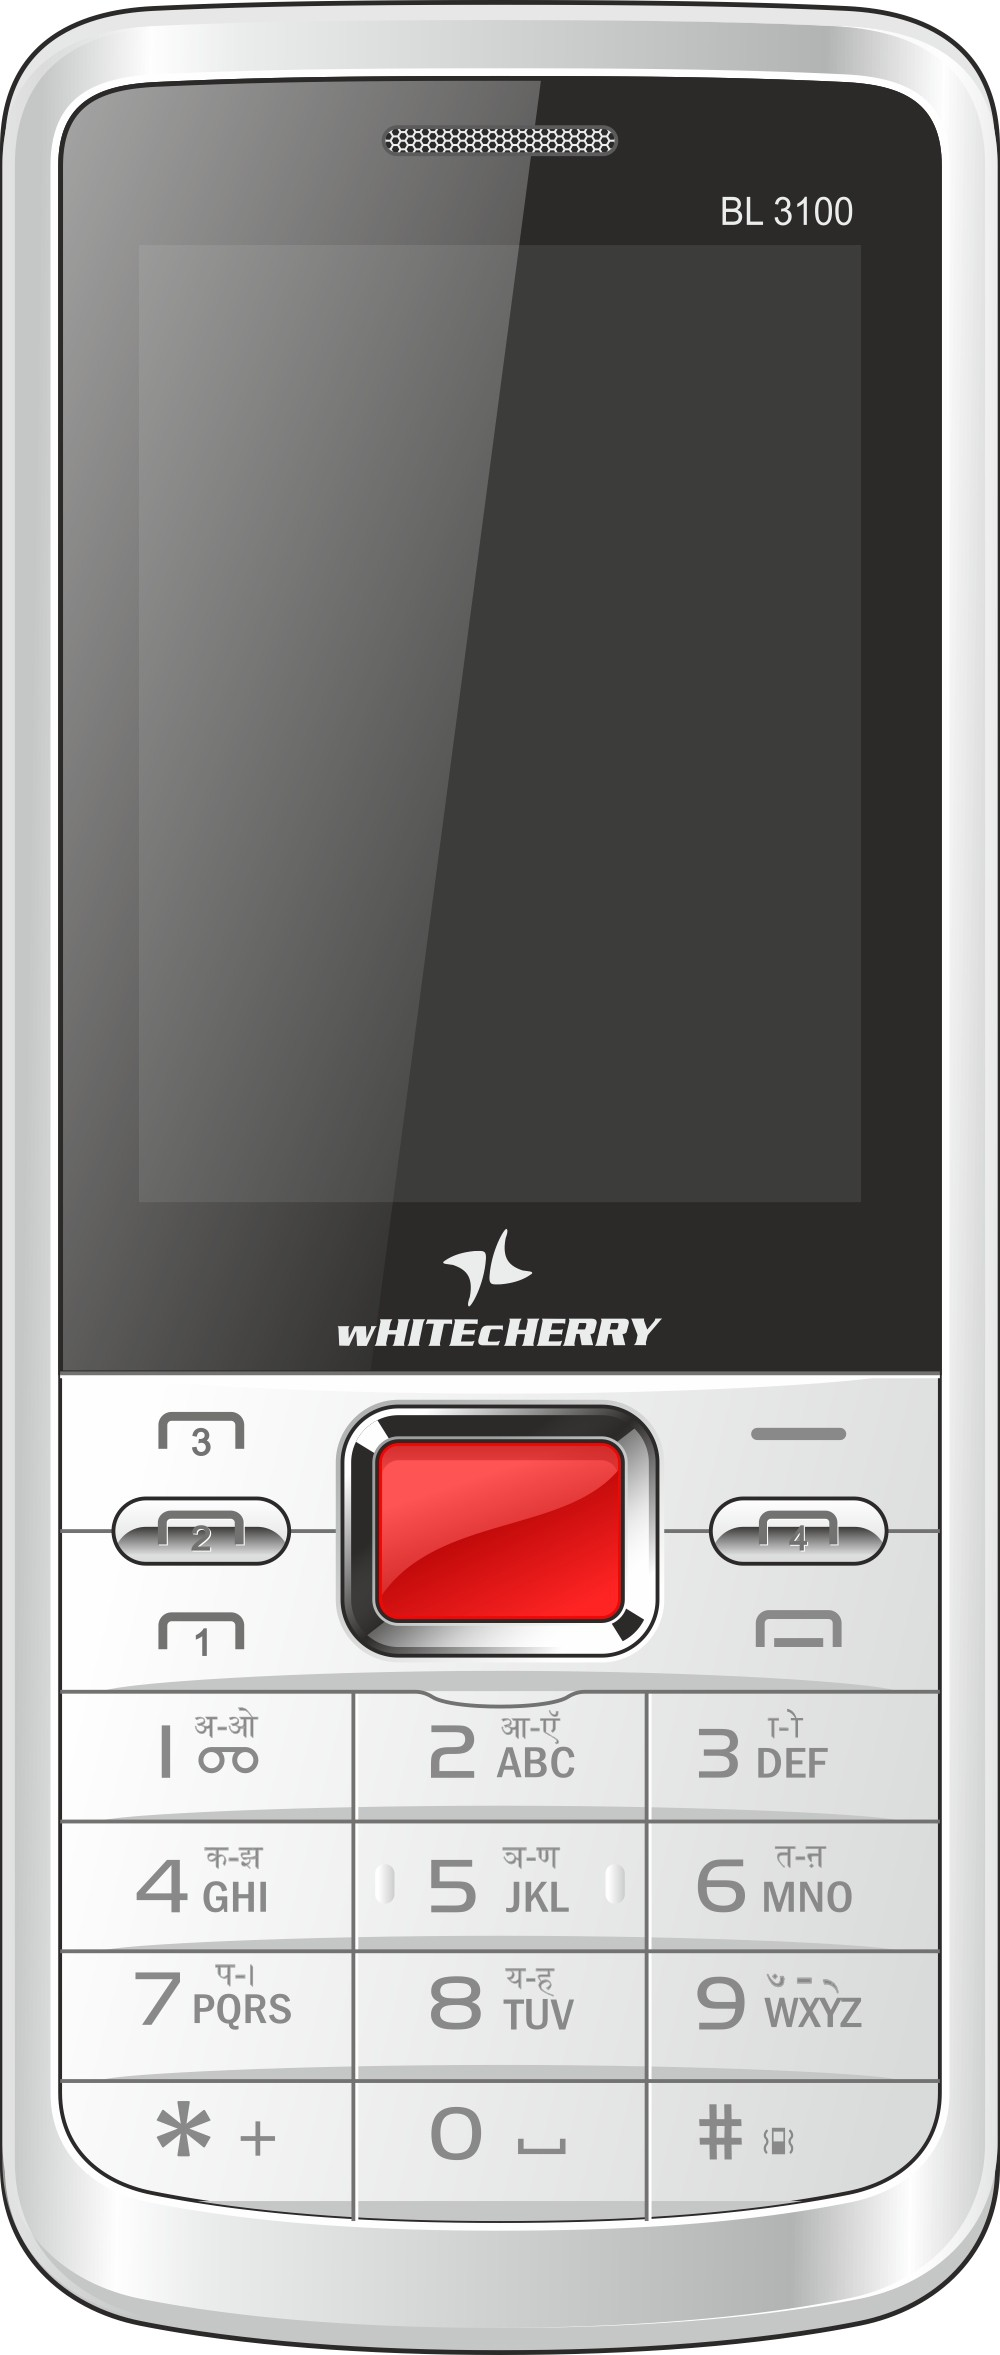 WhiteCherry BL3100(White)